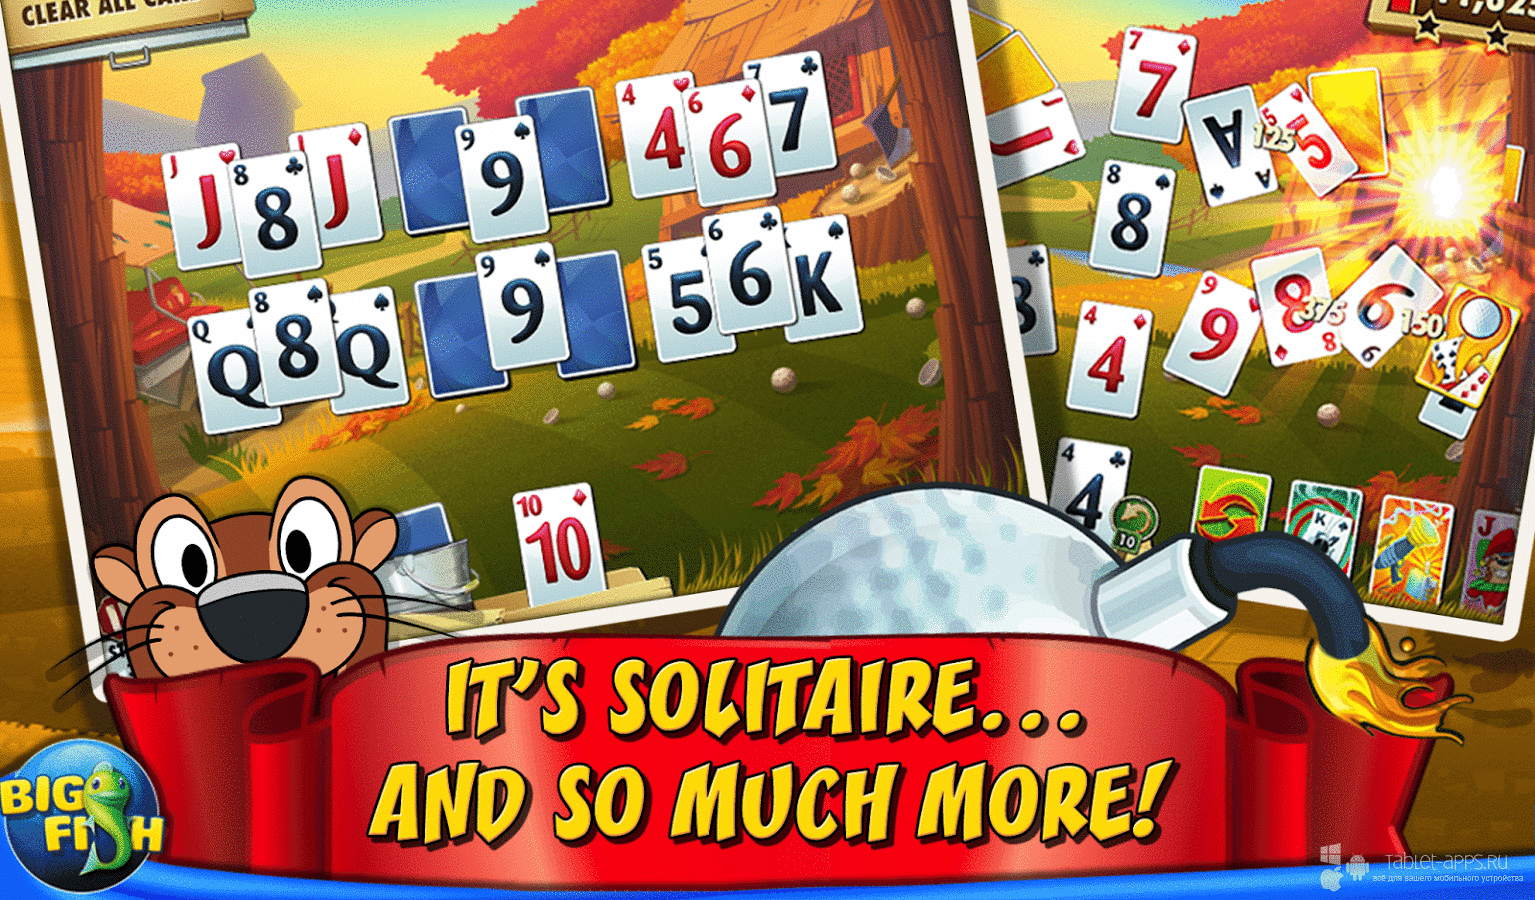 Fairway solitaire blast v 1 1 3 android